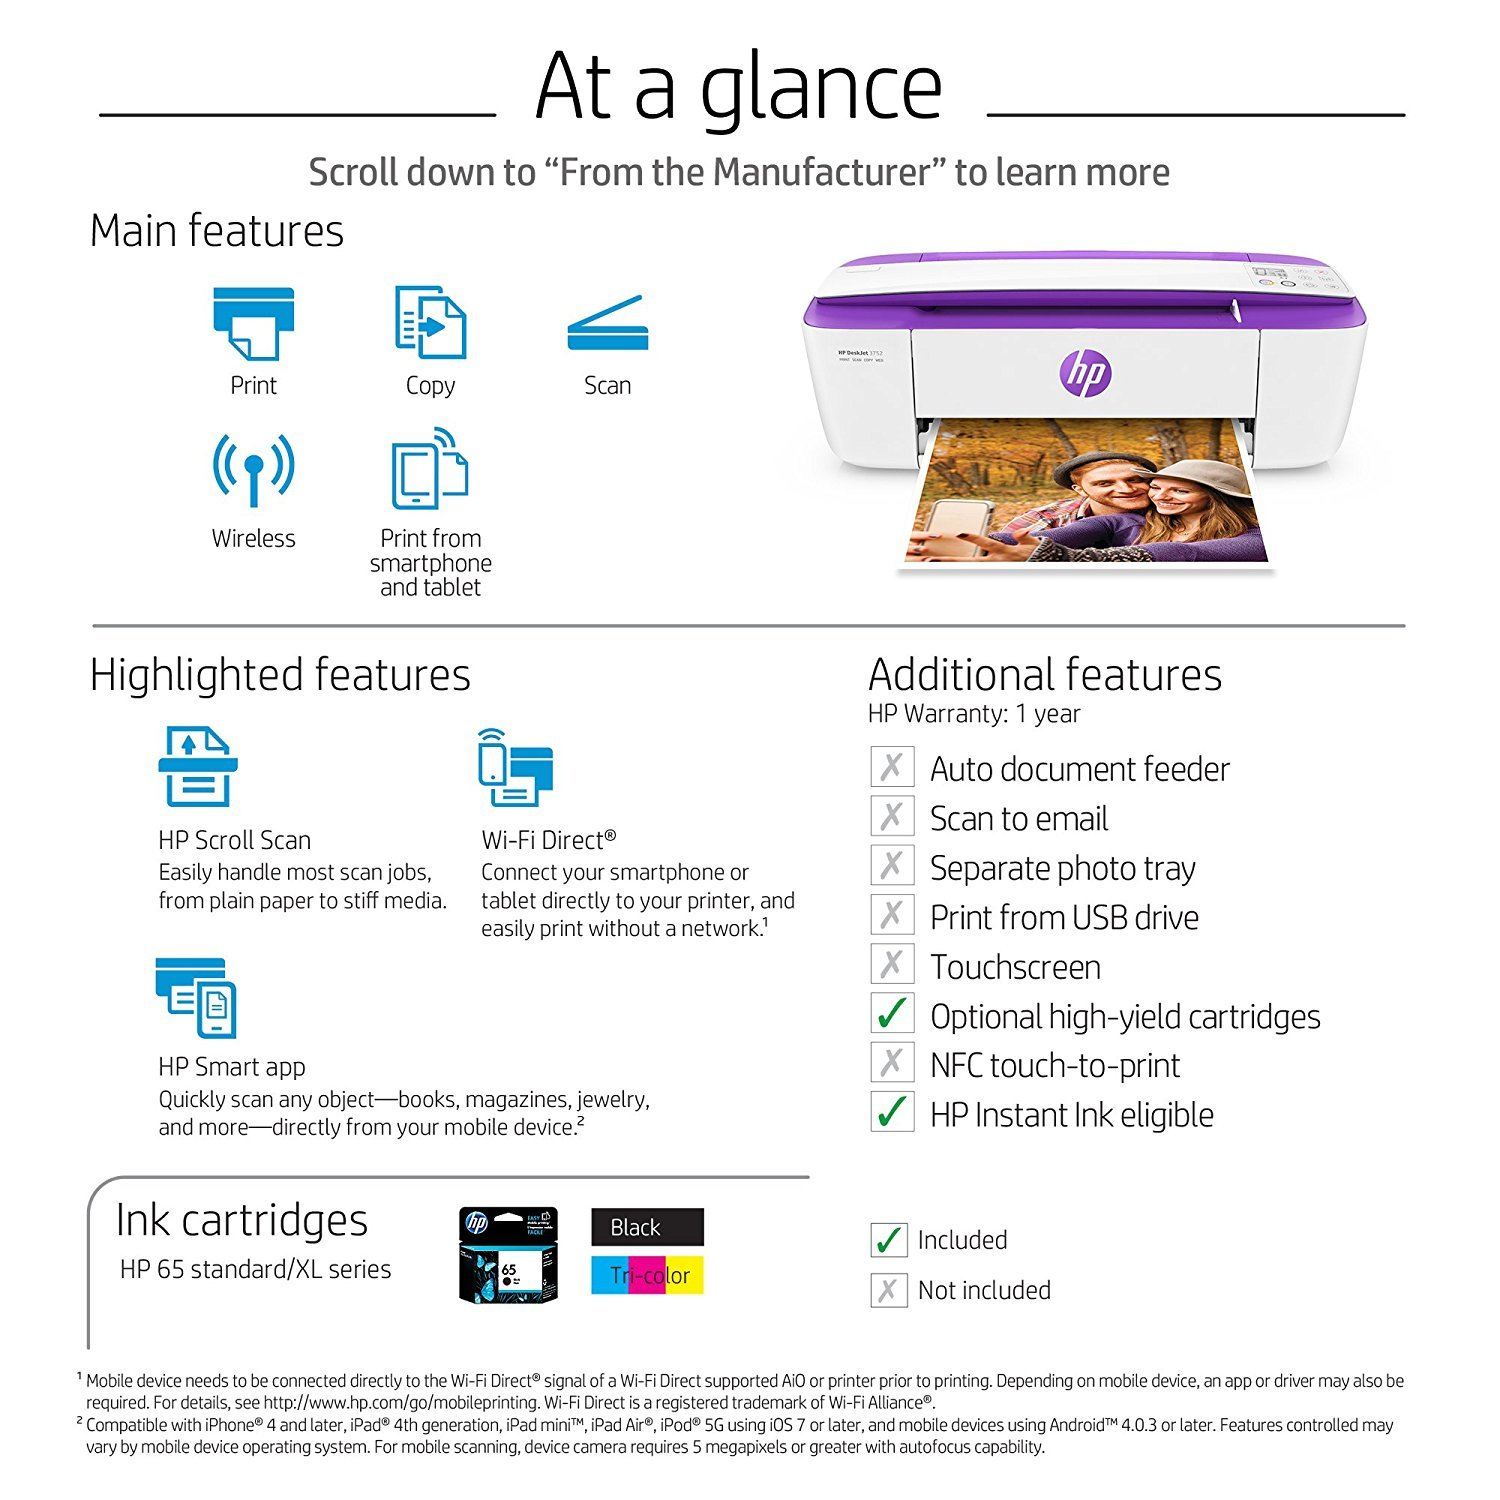 HP DeskJet 3752 Wireless All-in-One Compact Printer with Mobile